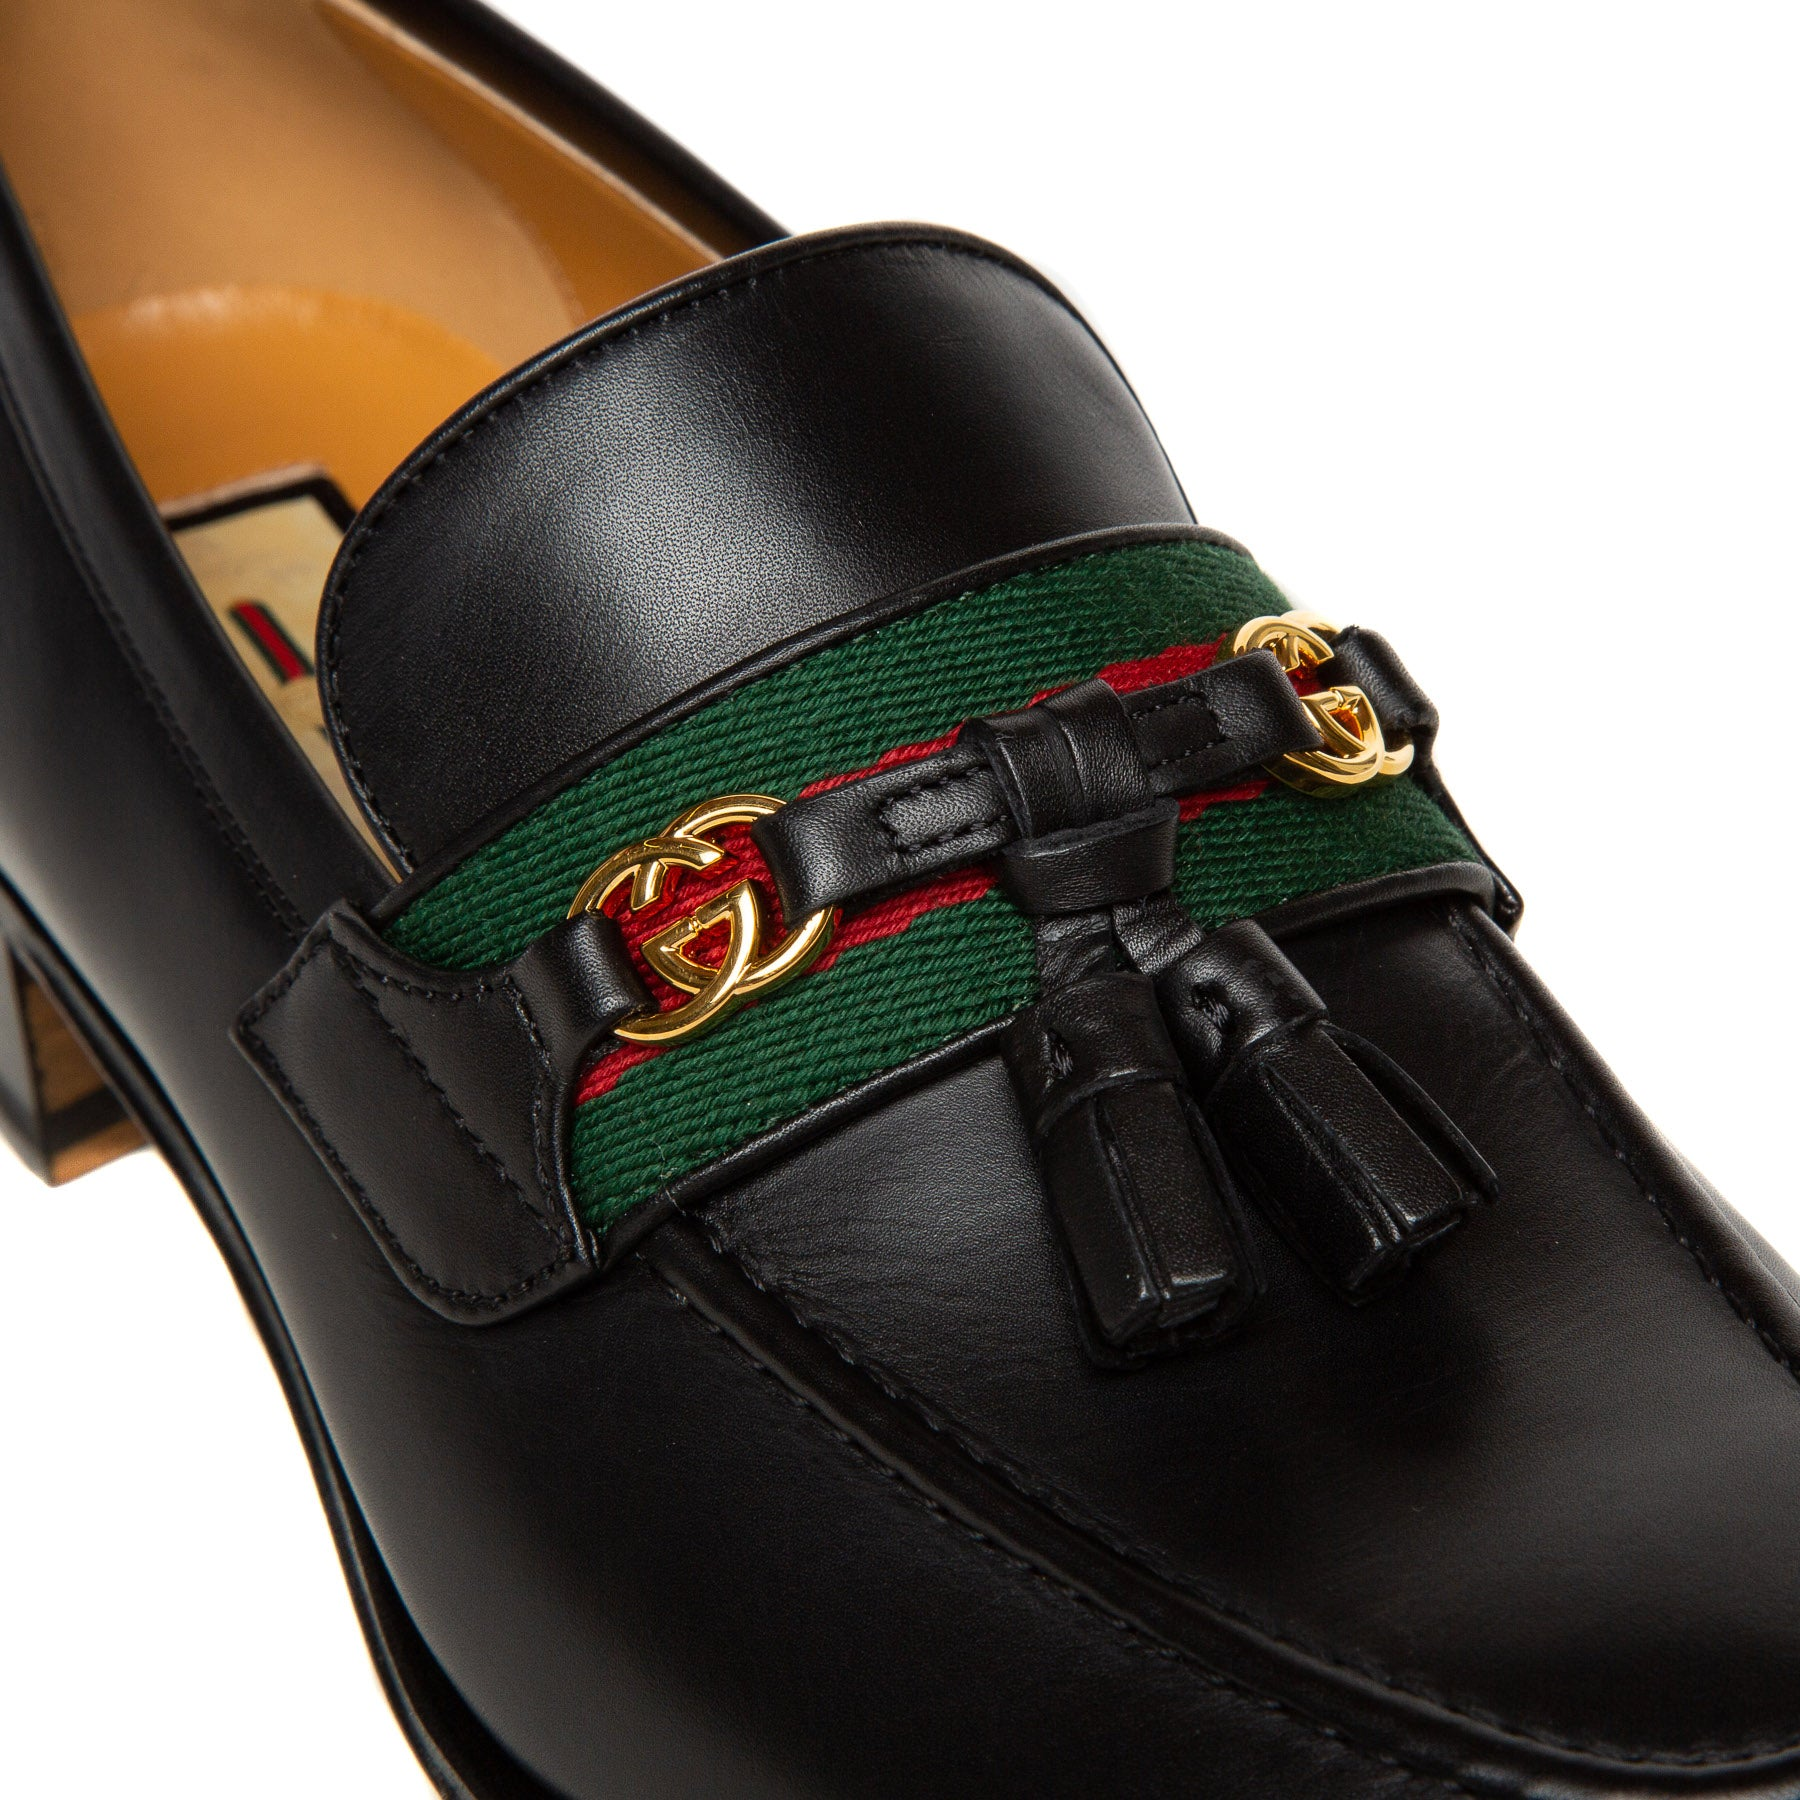 black leather Gucci loafers close up